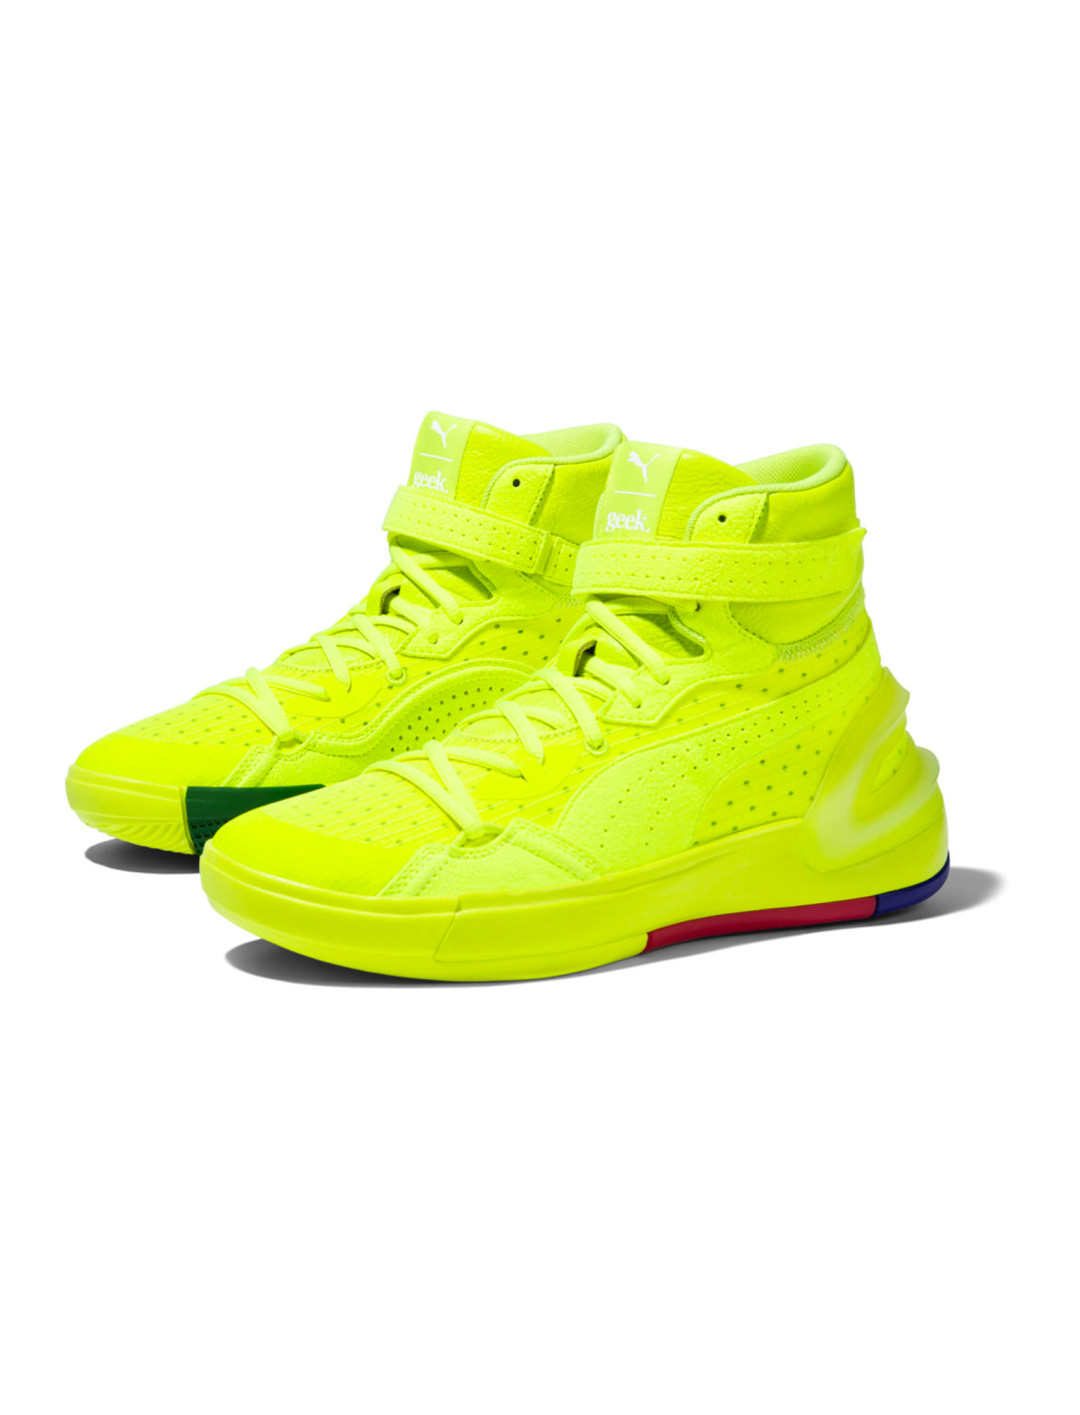 Sky Modern Basketball Shoes